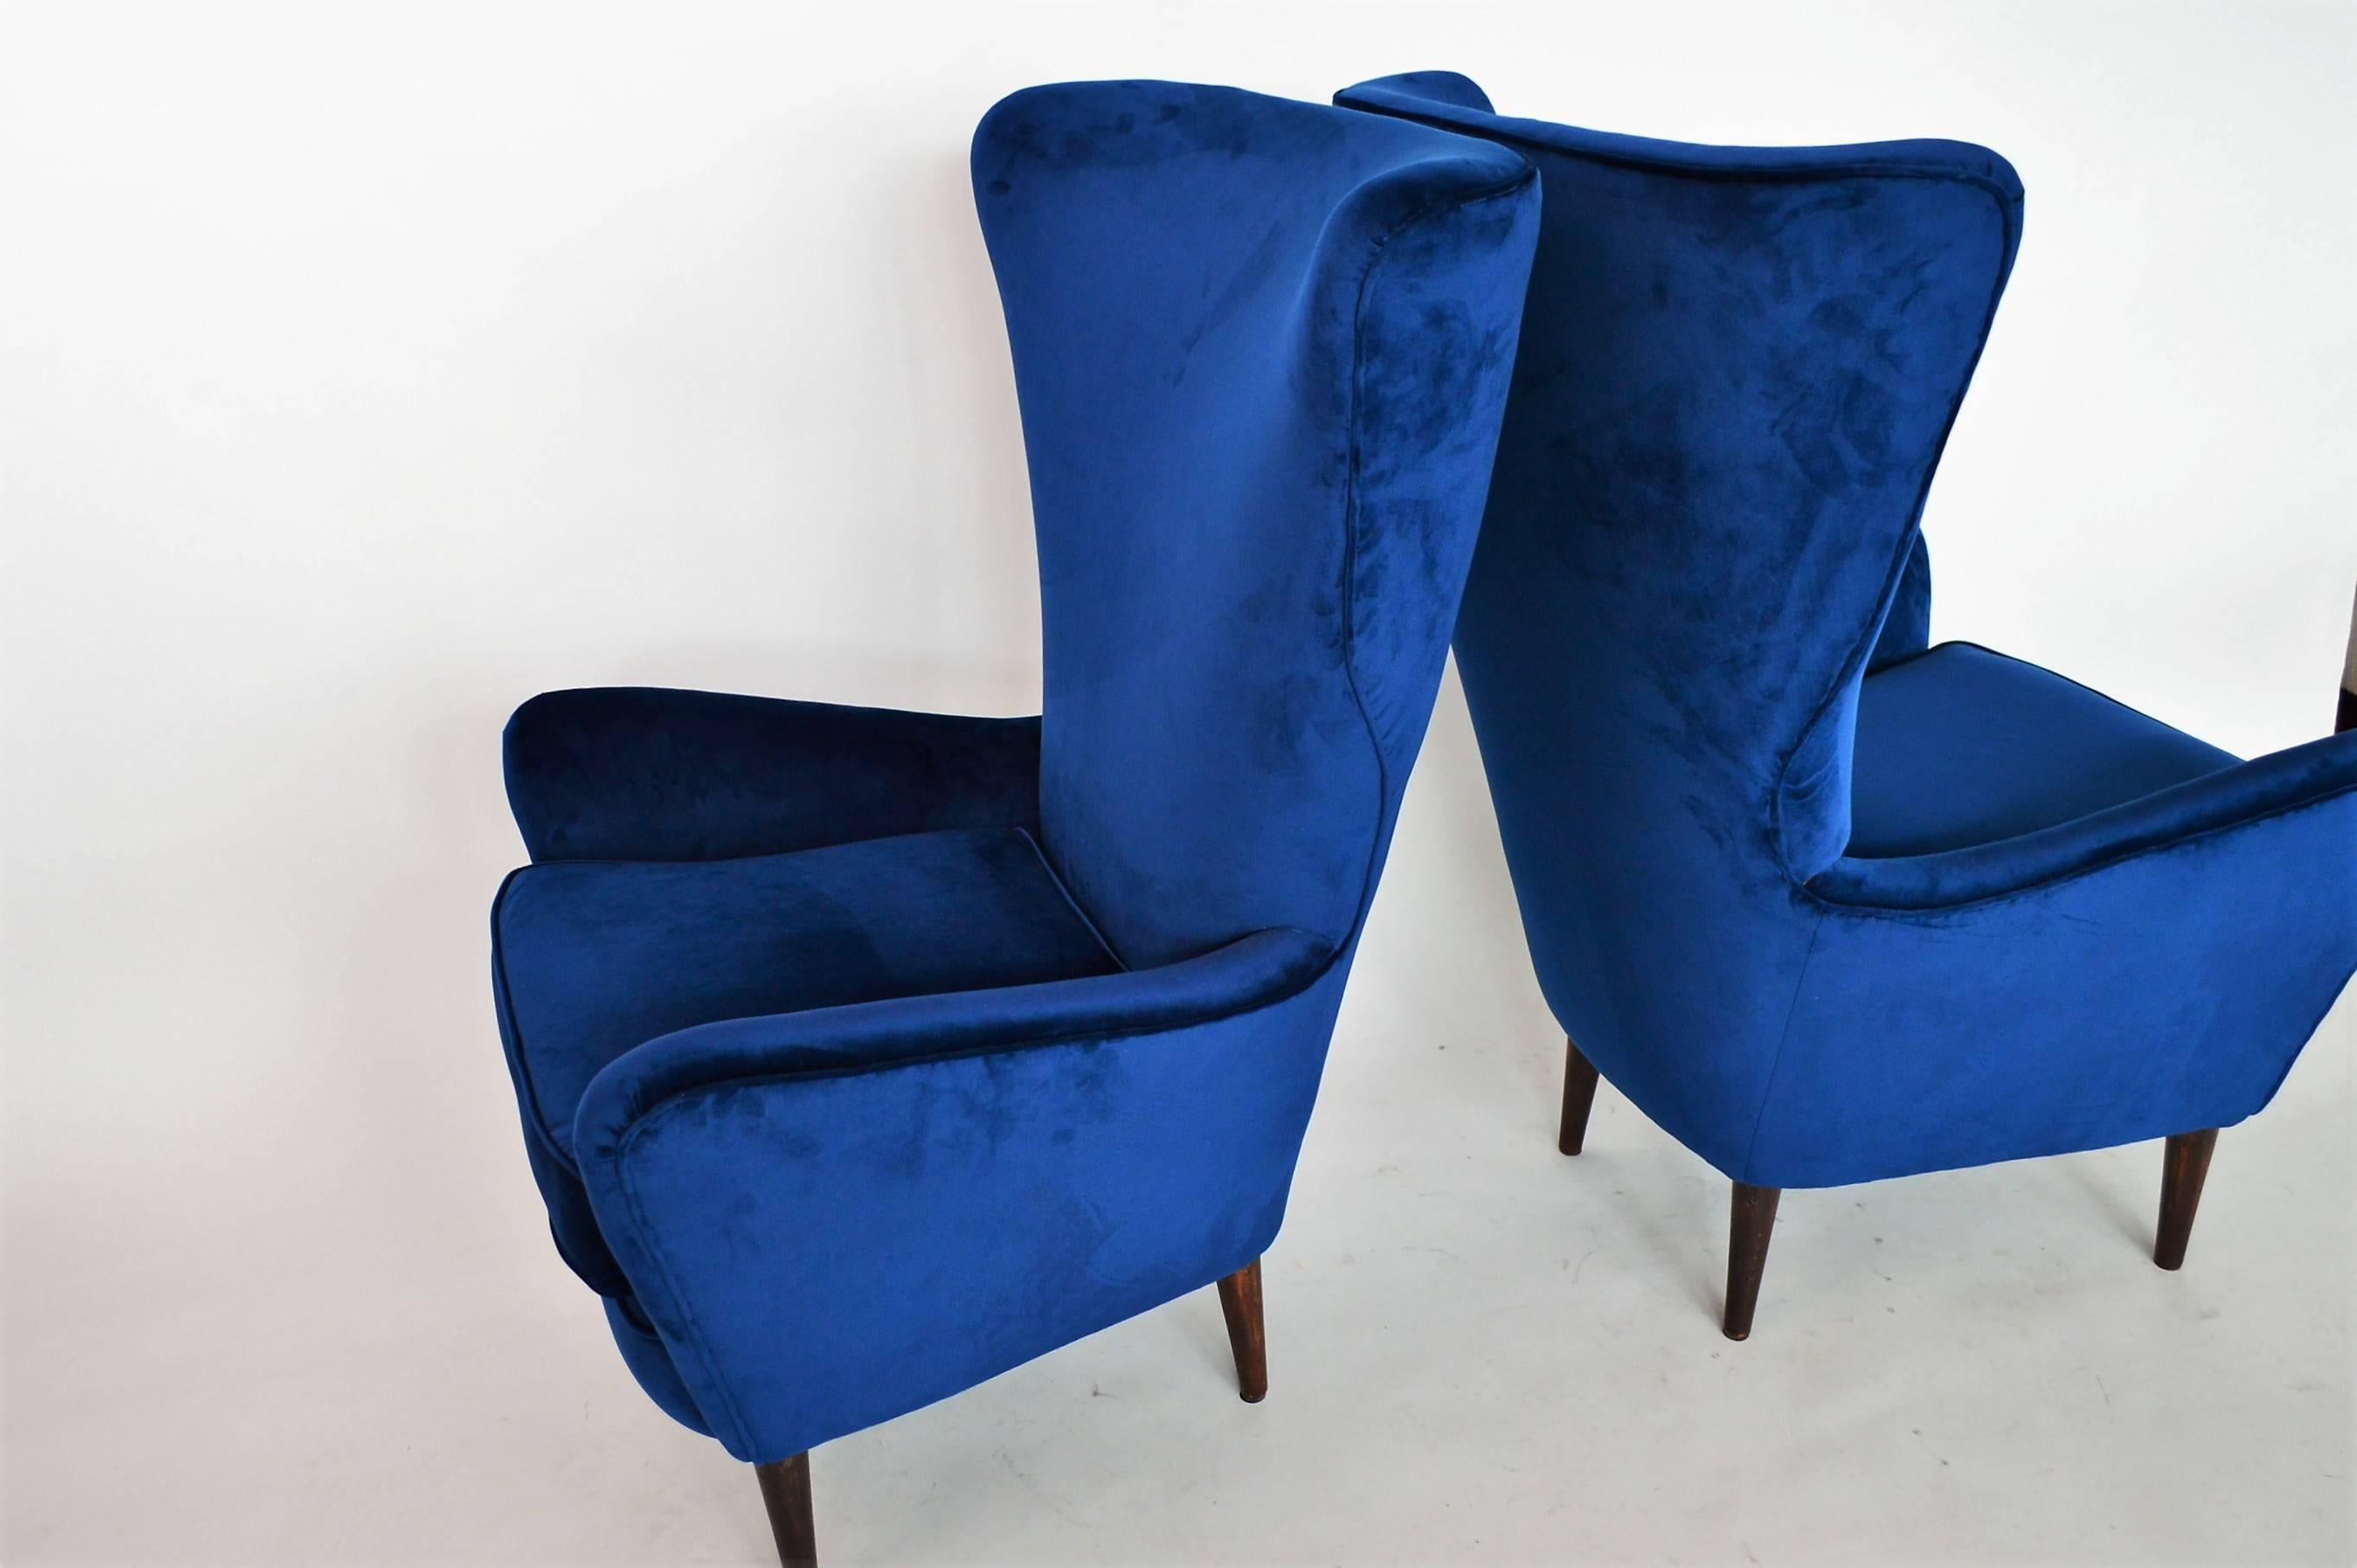 Italian Lounge Chairs Restored With Royal Blue Velvet, 1950s For Sale 1